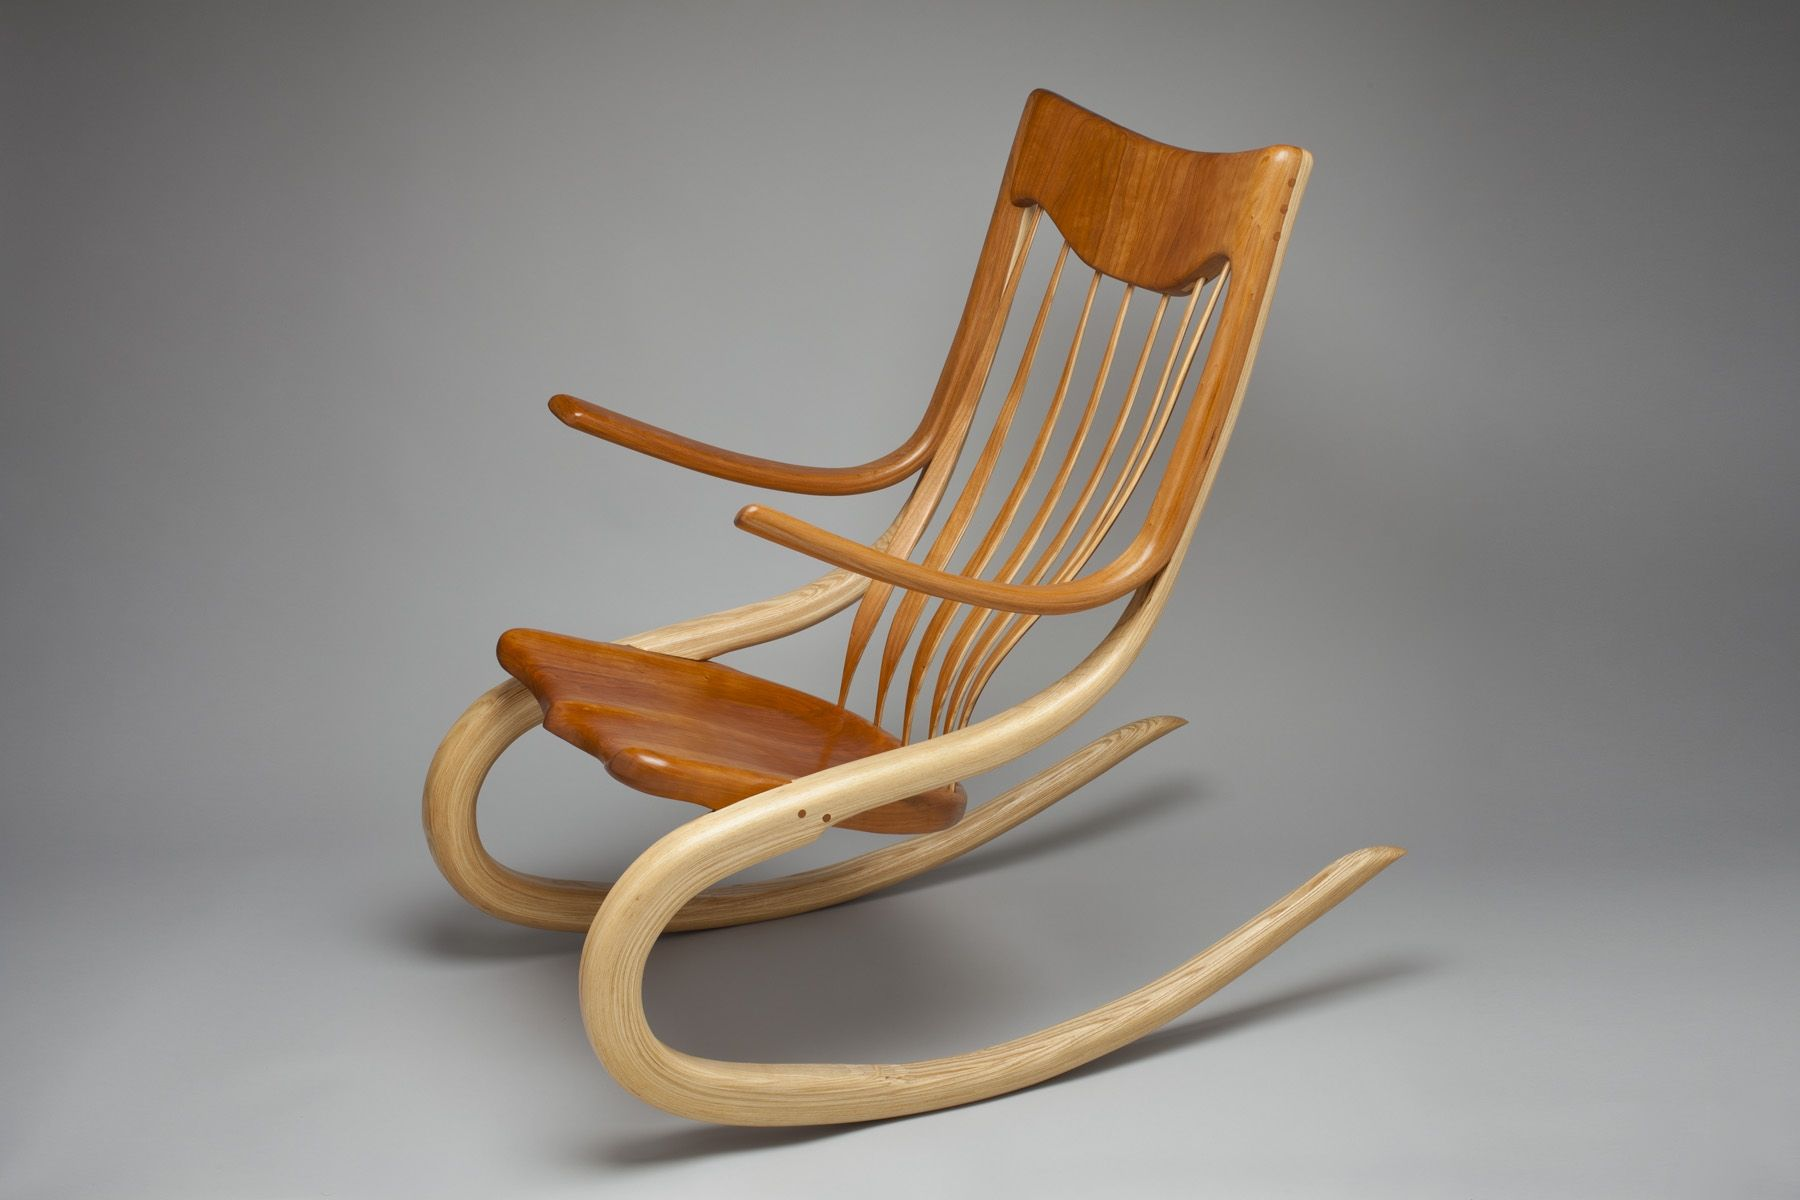 Custom Rocking Chairs Inspirational Adult Rocking Chair Rtty1 Rtty1